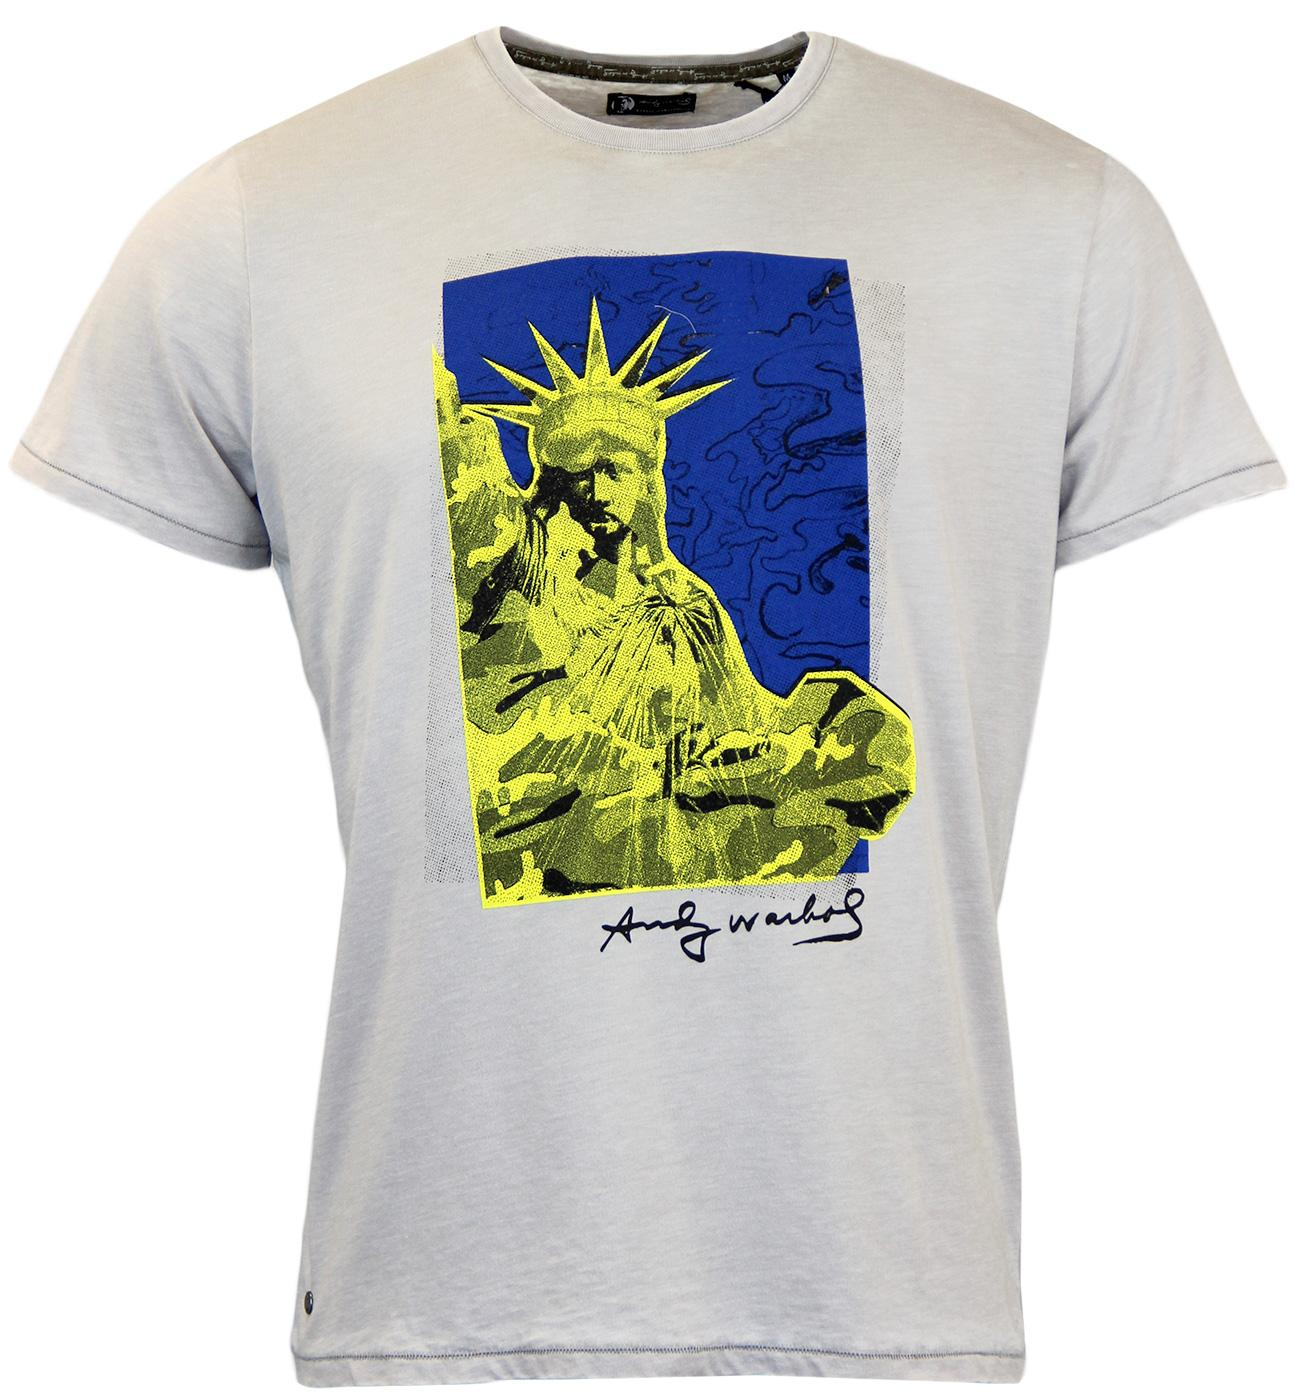 Liberty ANDY WARHOL Statue Of Liberty Pop Art Tee